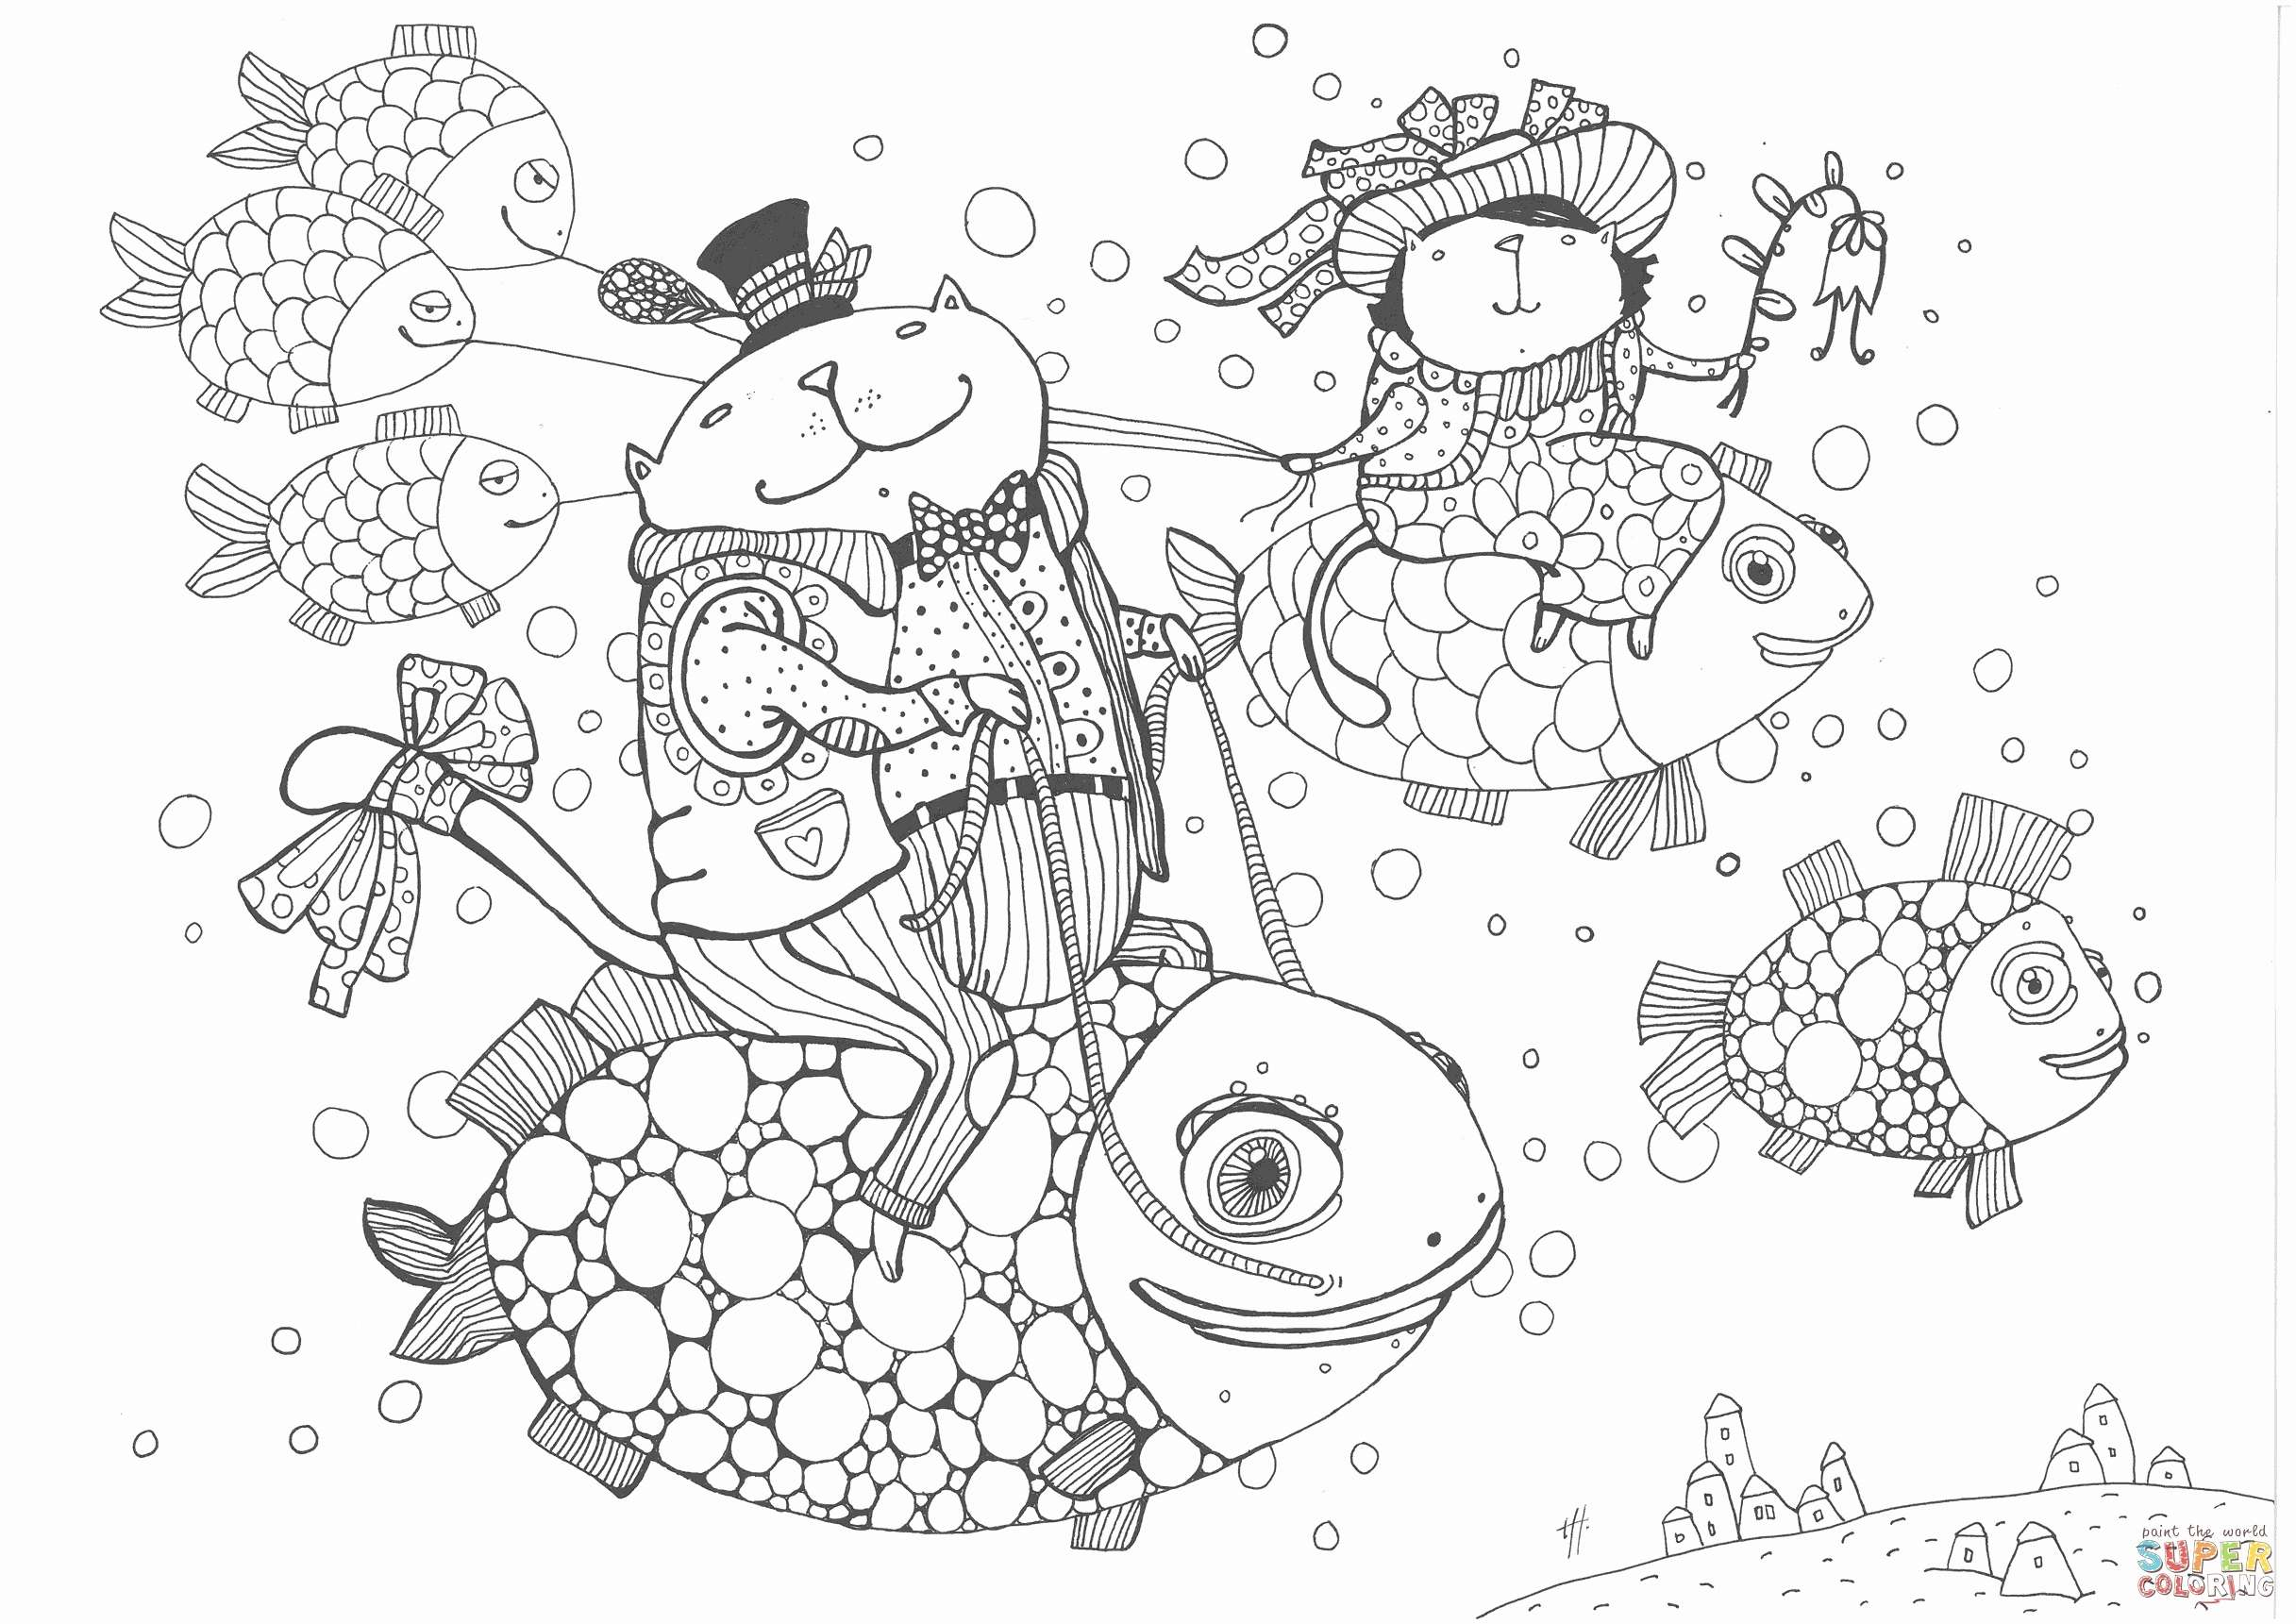 coloring pages greeting cards Collection-Christmas Greeting Cards Coloring Pages Merry Christmas Card Coloring Pages 5-o